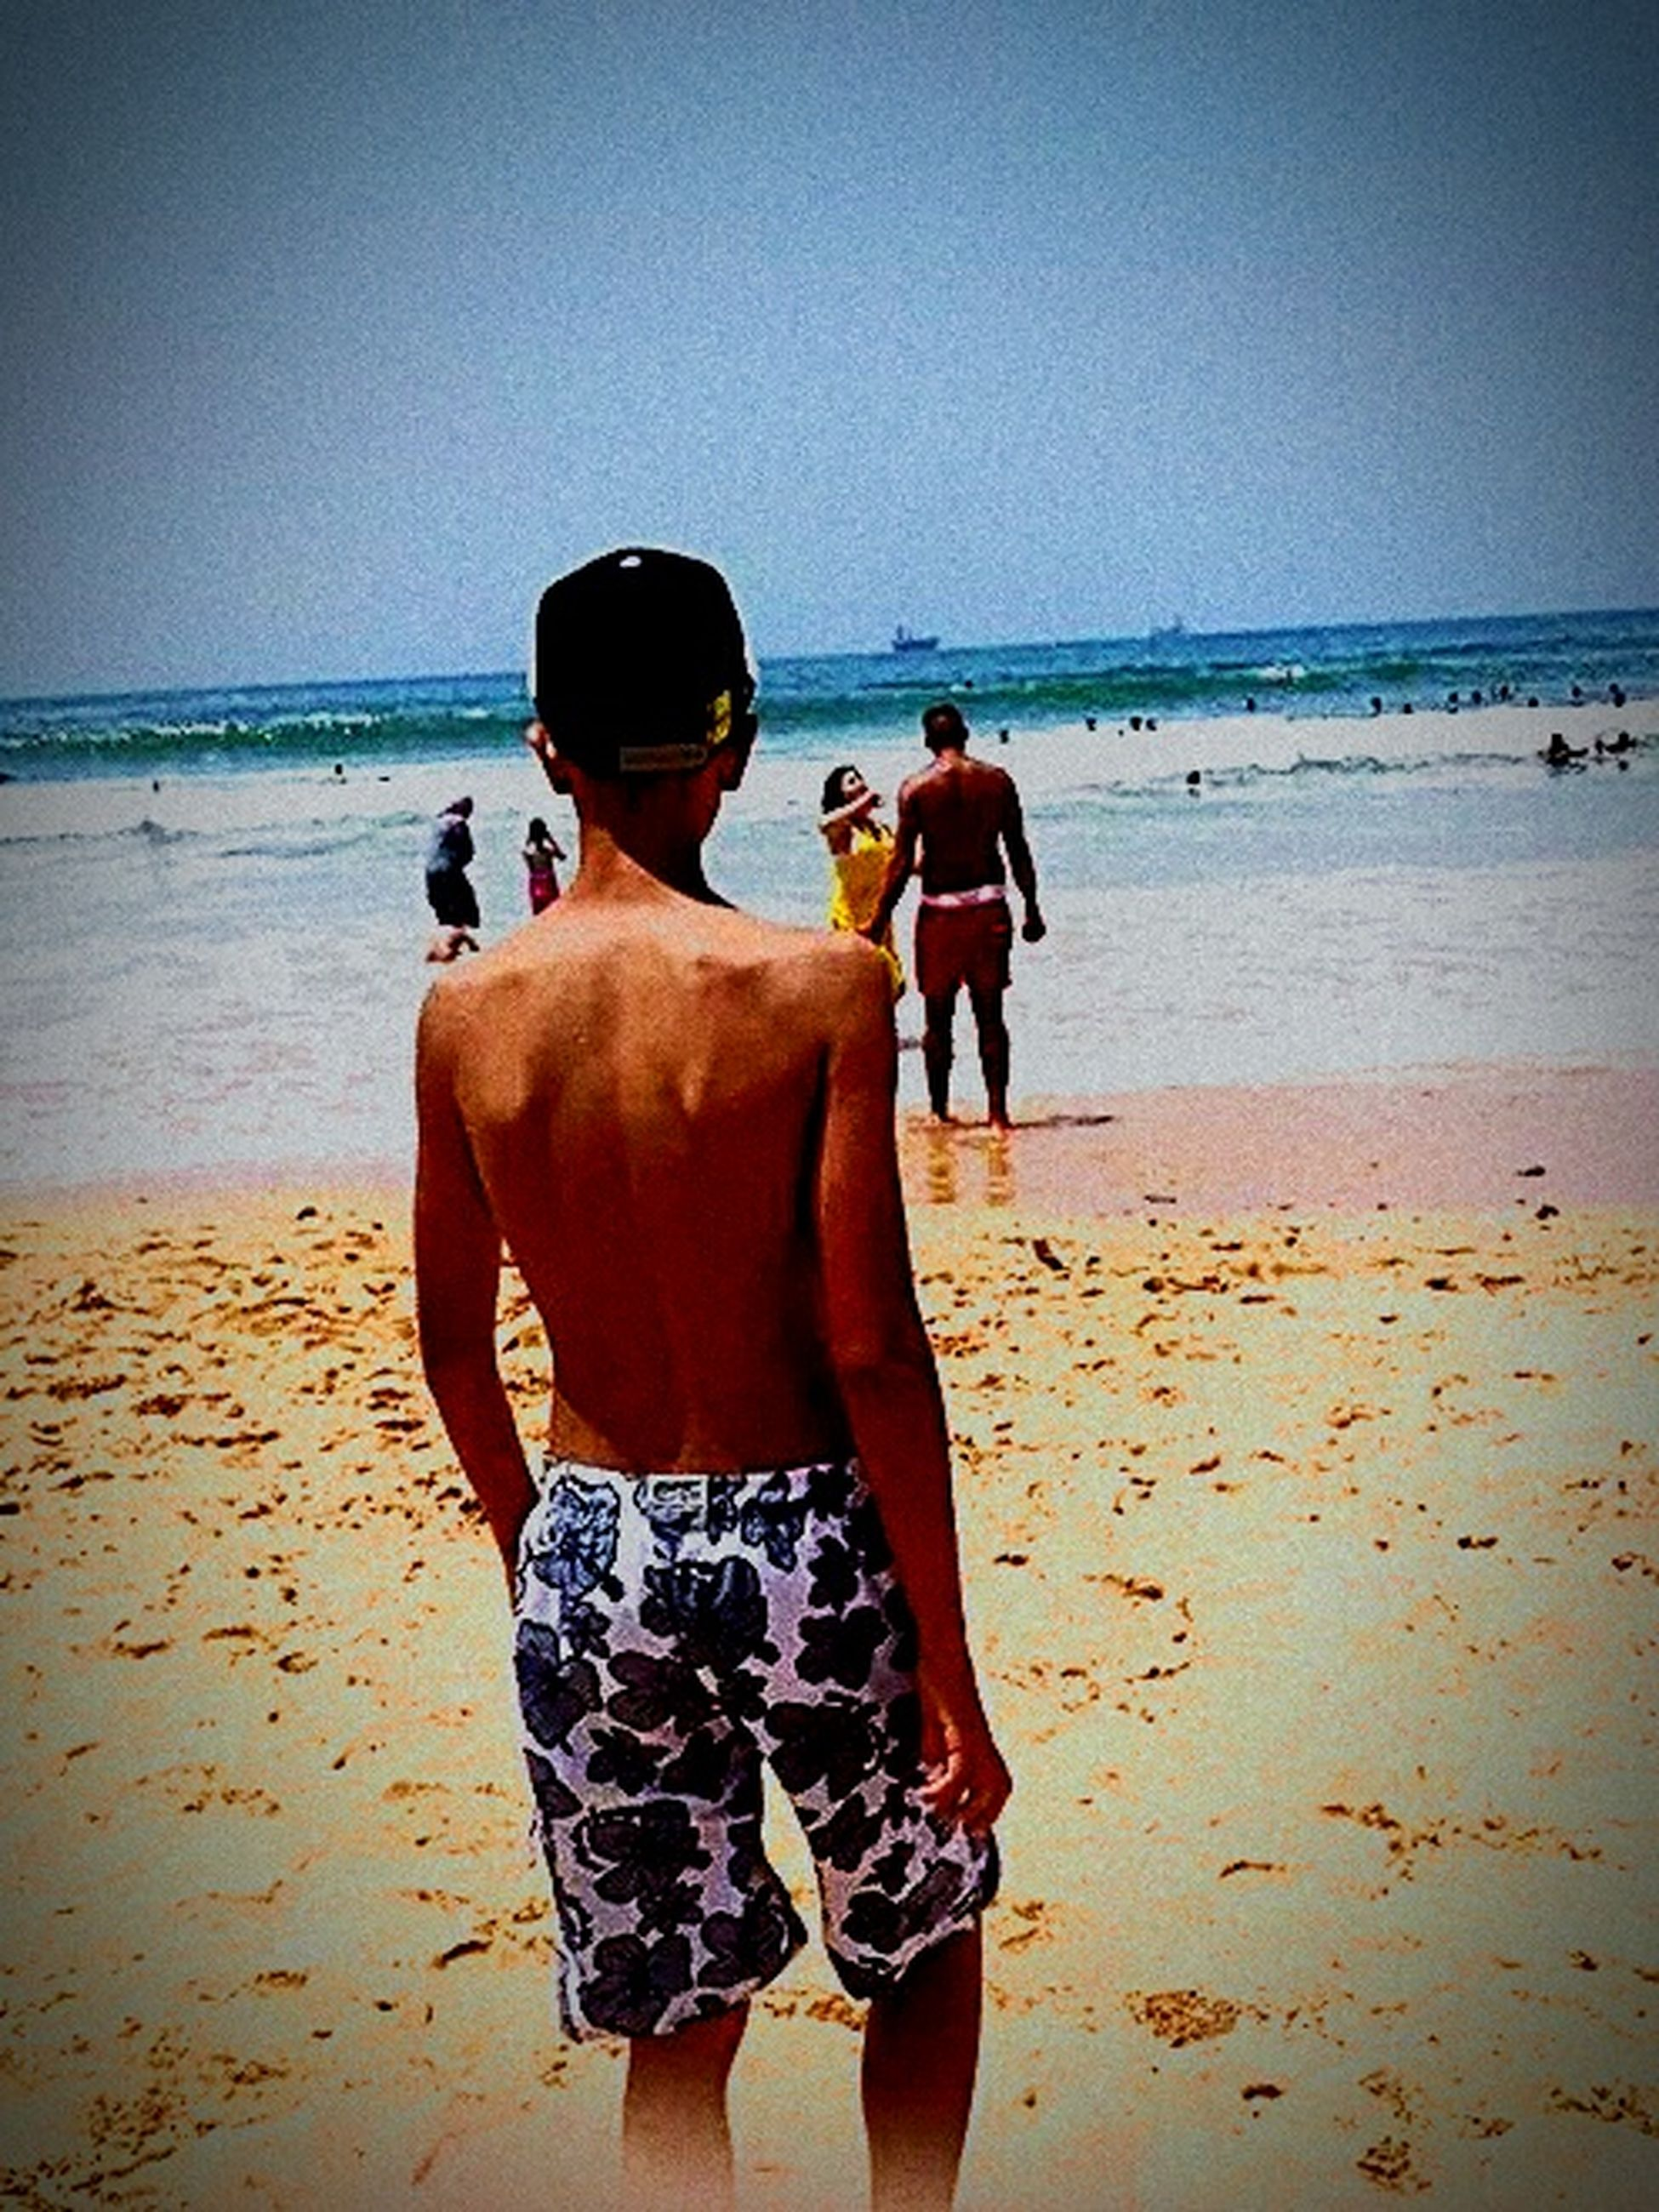 beach, sea, horizon over water, sand, water, shore, clear sky, lifestyles, leisure activity, togetherness, rear view, men, vacations, person, full length, standing, bonding, copy space